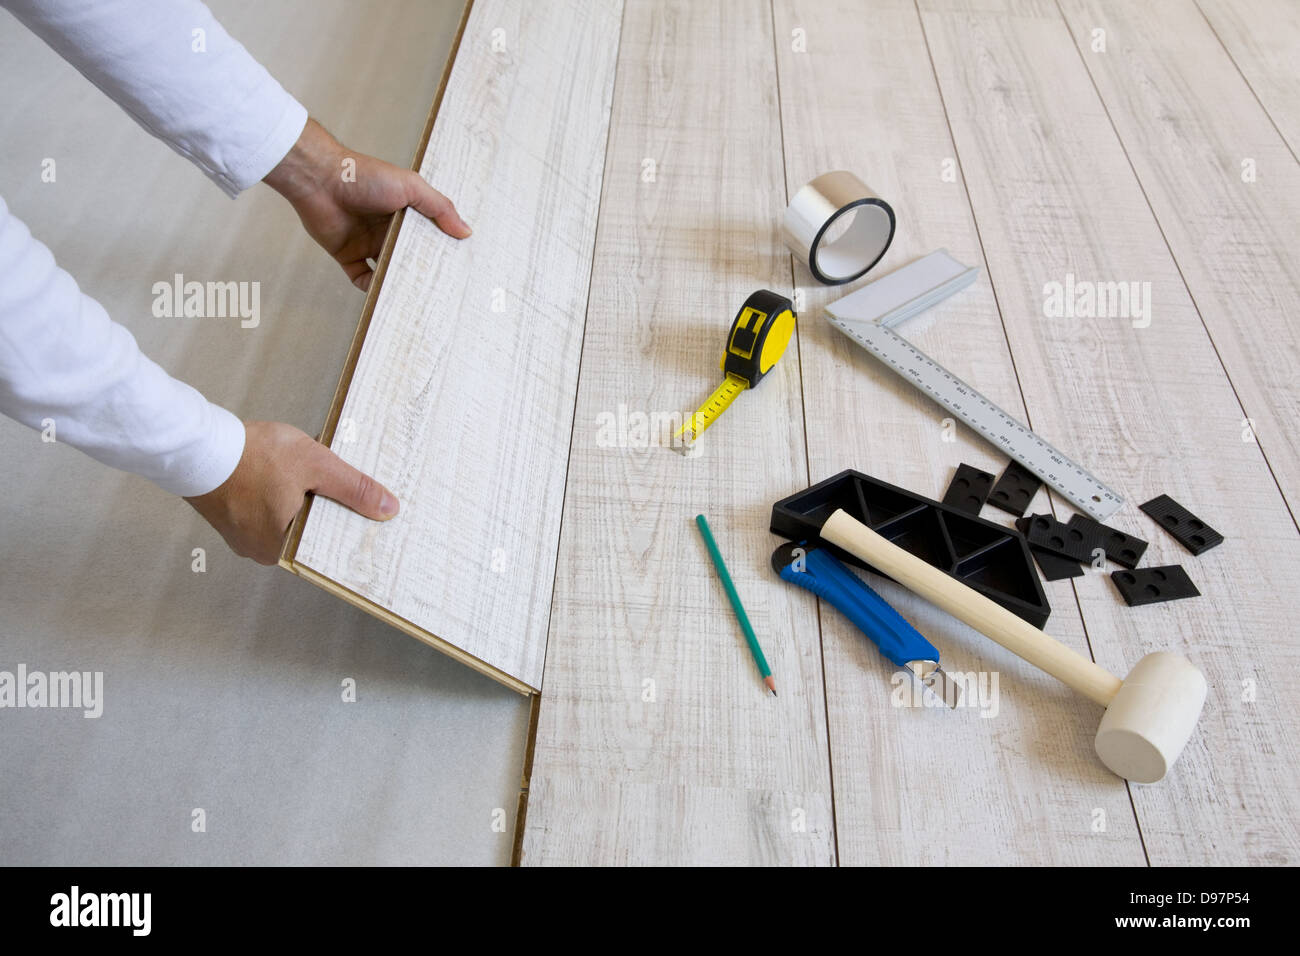 Worker laying a floor with laminated flooring boards - Stock Image